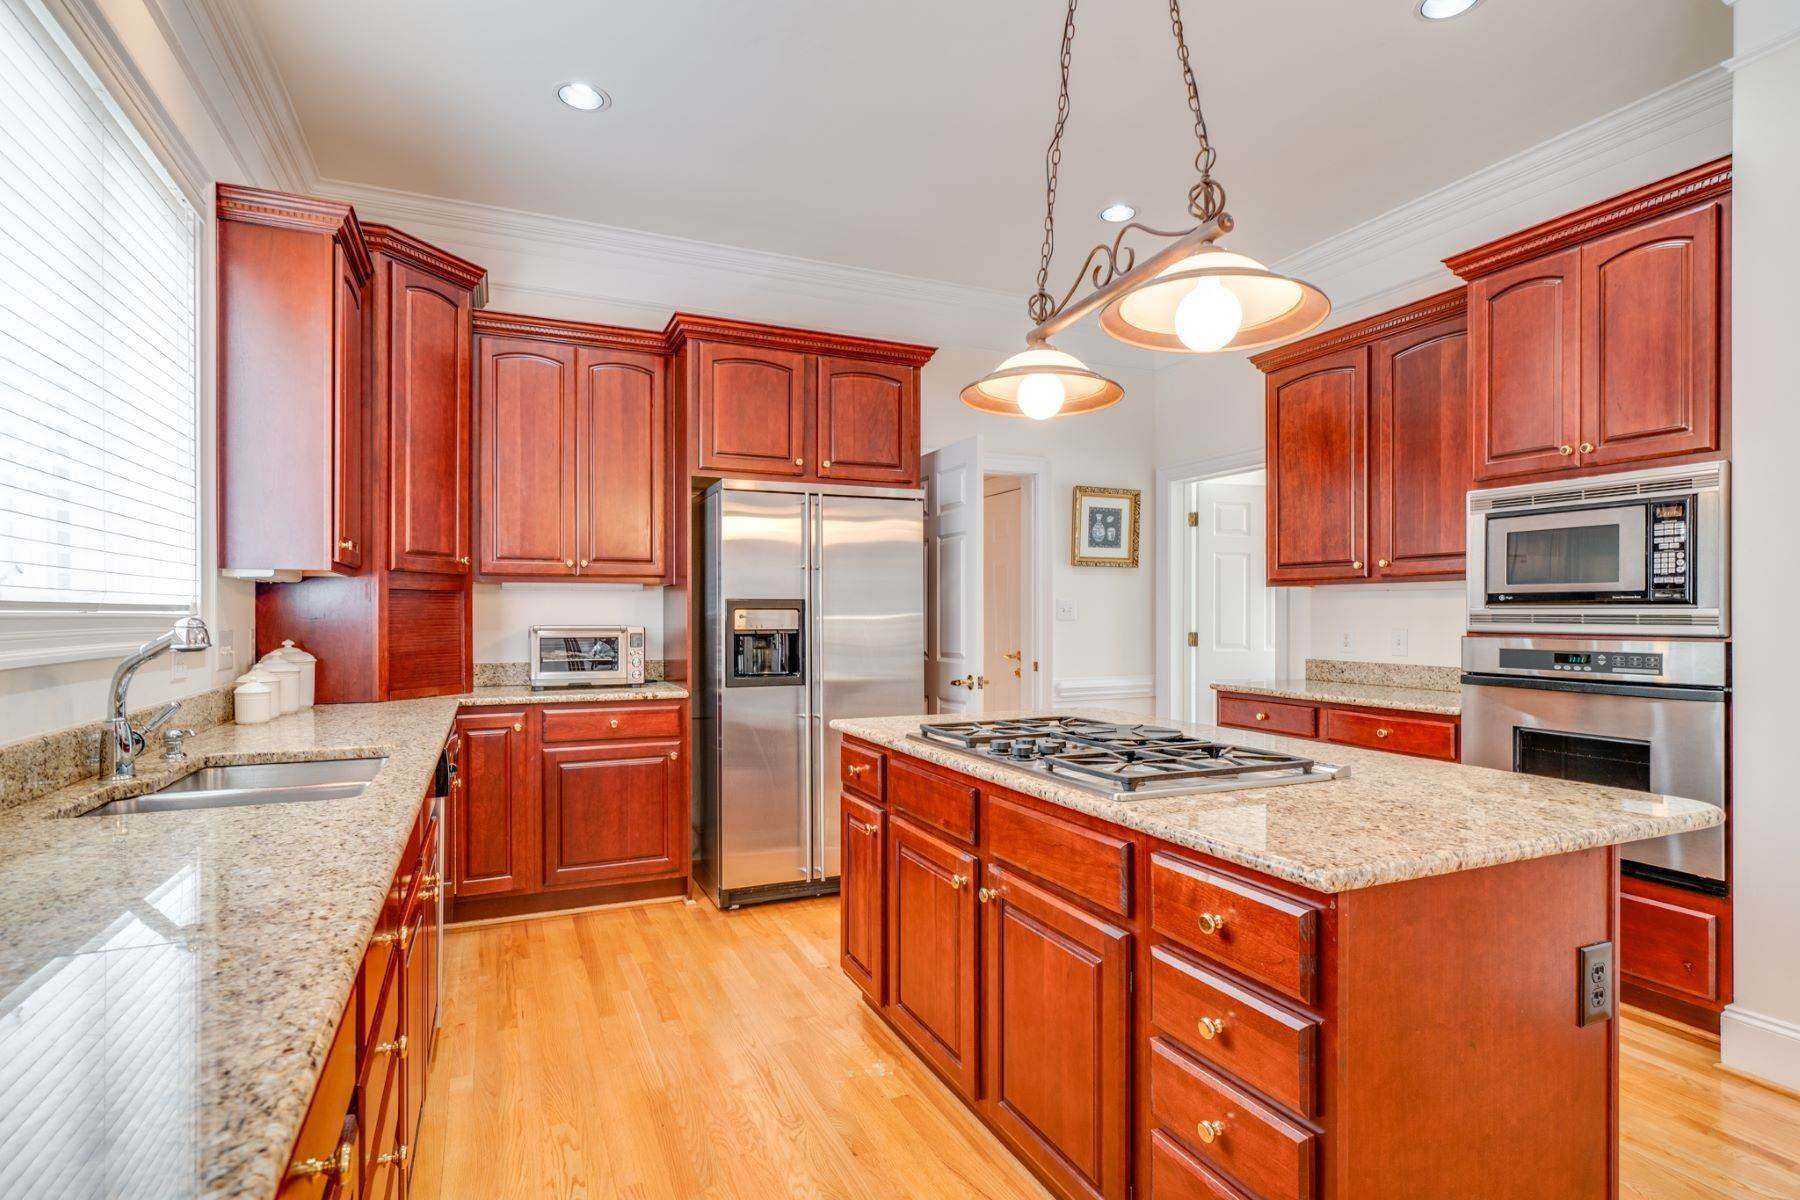 10. Single Family Homes for Sale at 106 Michelin Place Cary, North Carolina 27511 United States